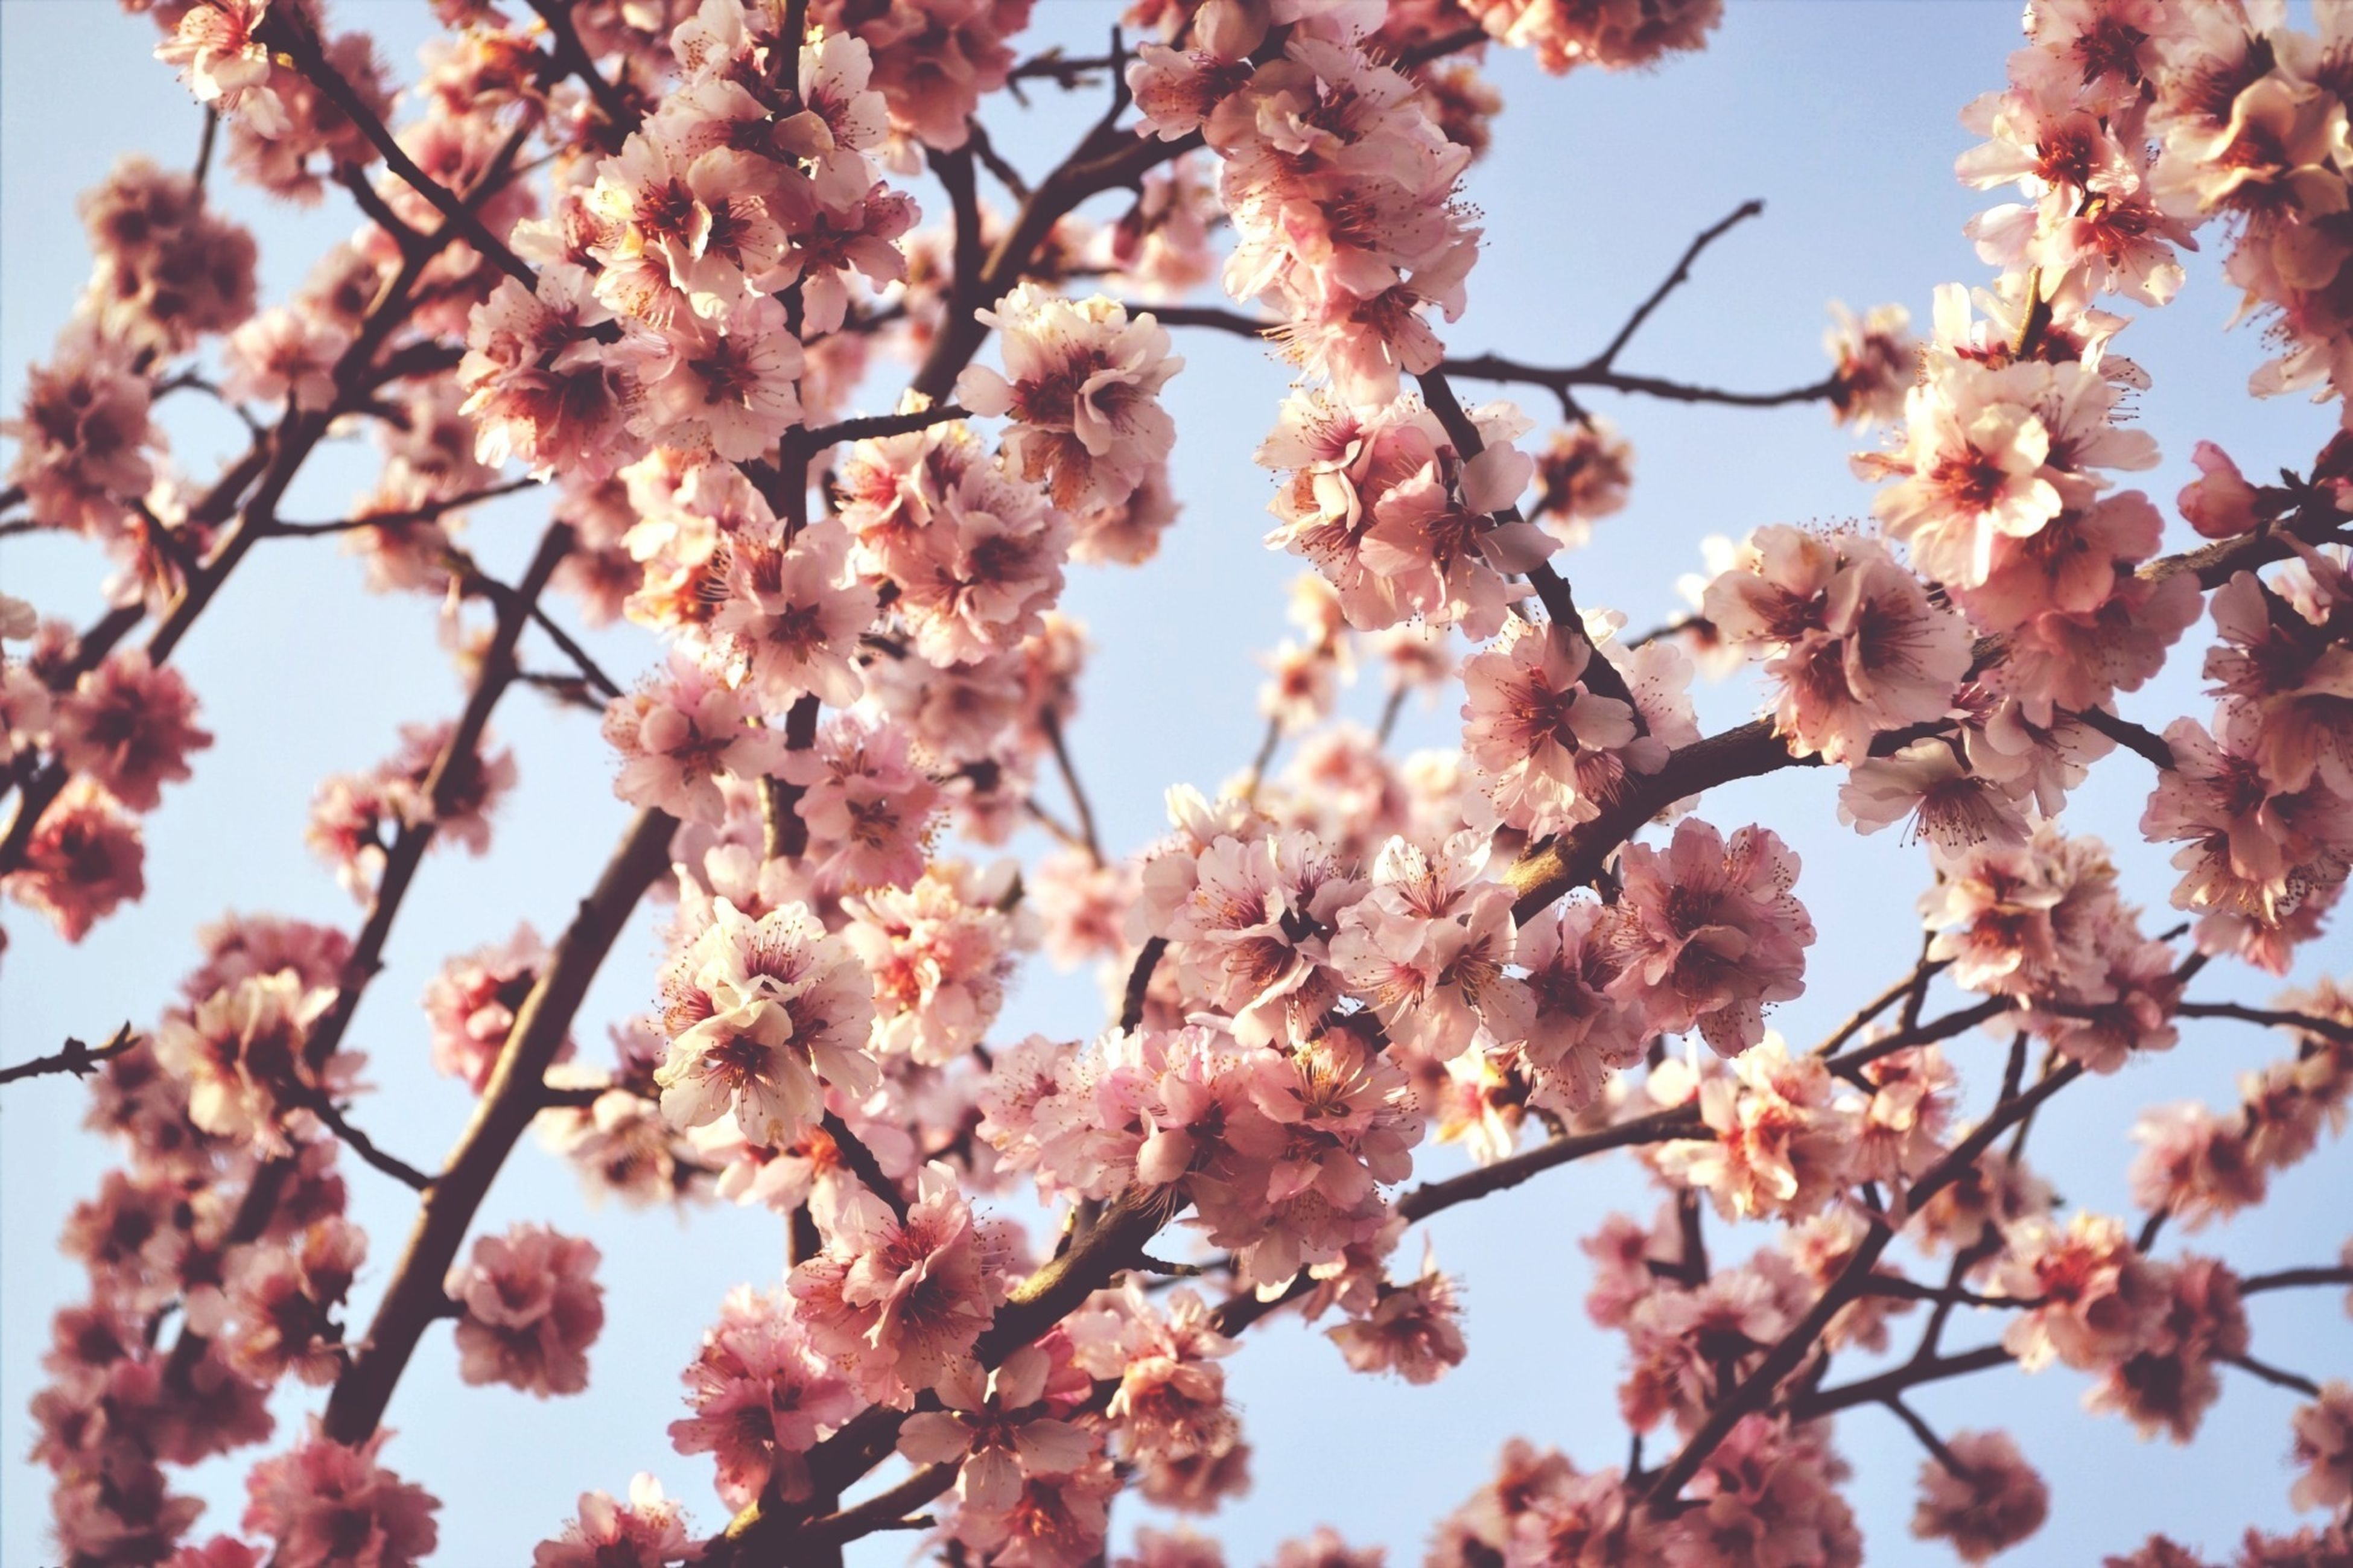 flower, branch, freshness, tree, growth, low angle view, beauty in nature, blossom, fragility, cherry blossom, nature, cherry tree, pink color, springtime, in bloom, blooming, fruit tree, twig, petal, outdoors